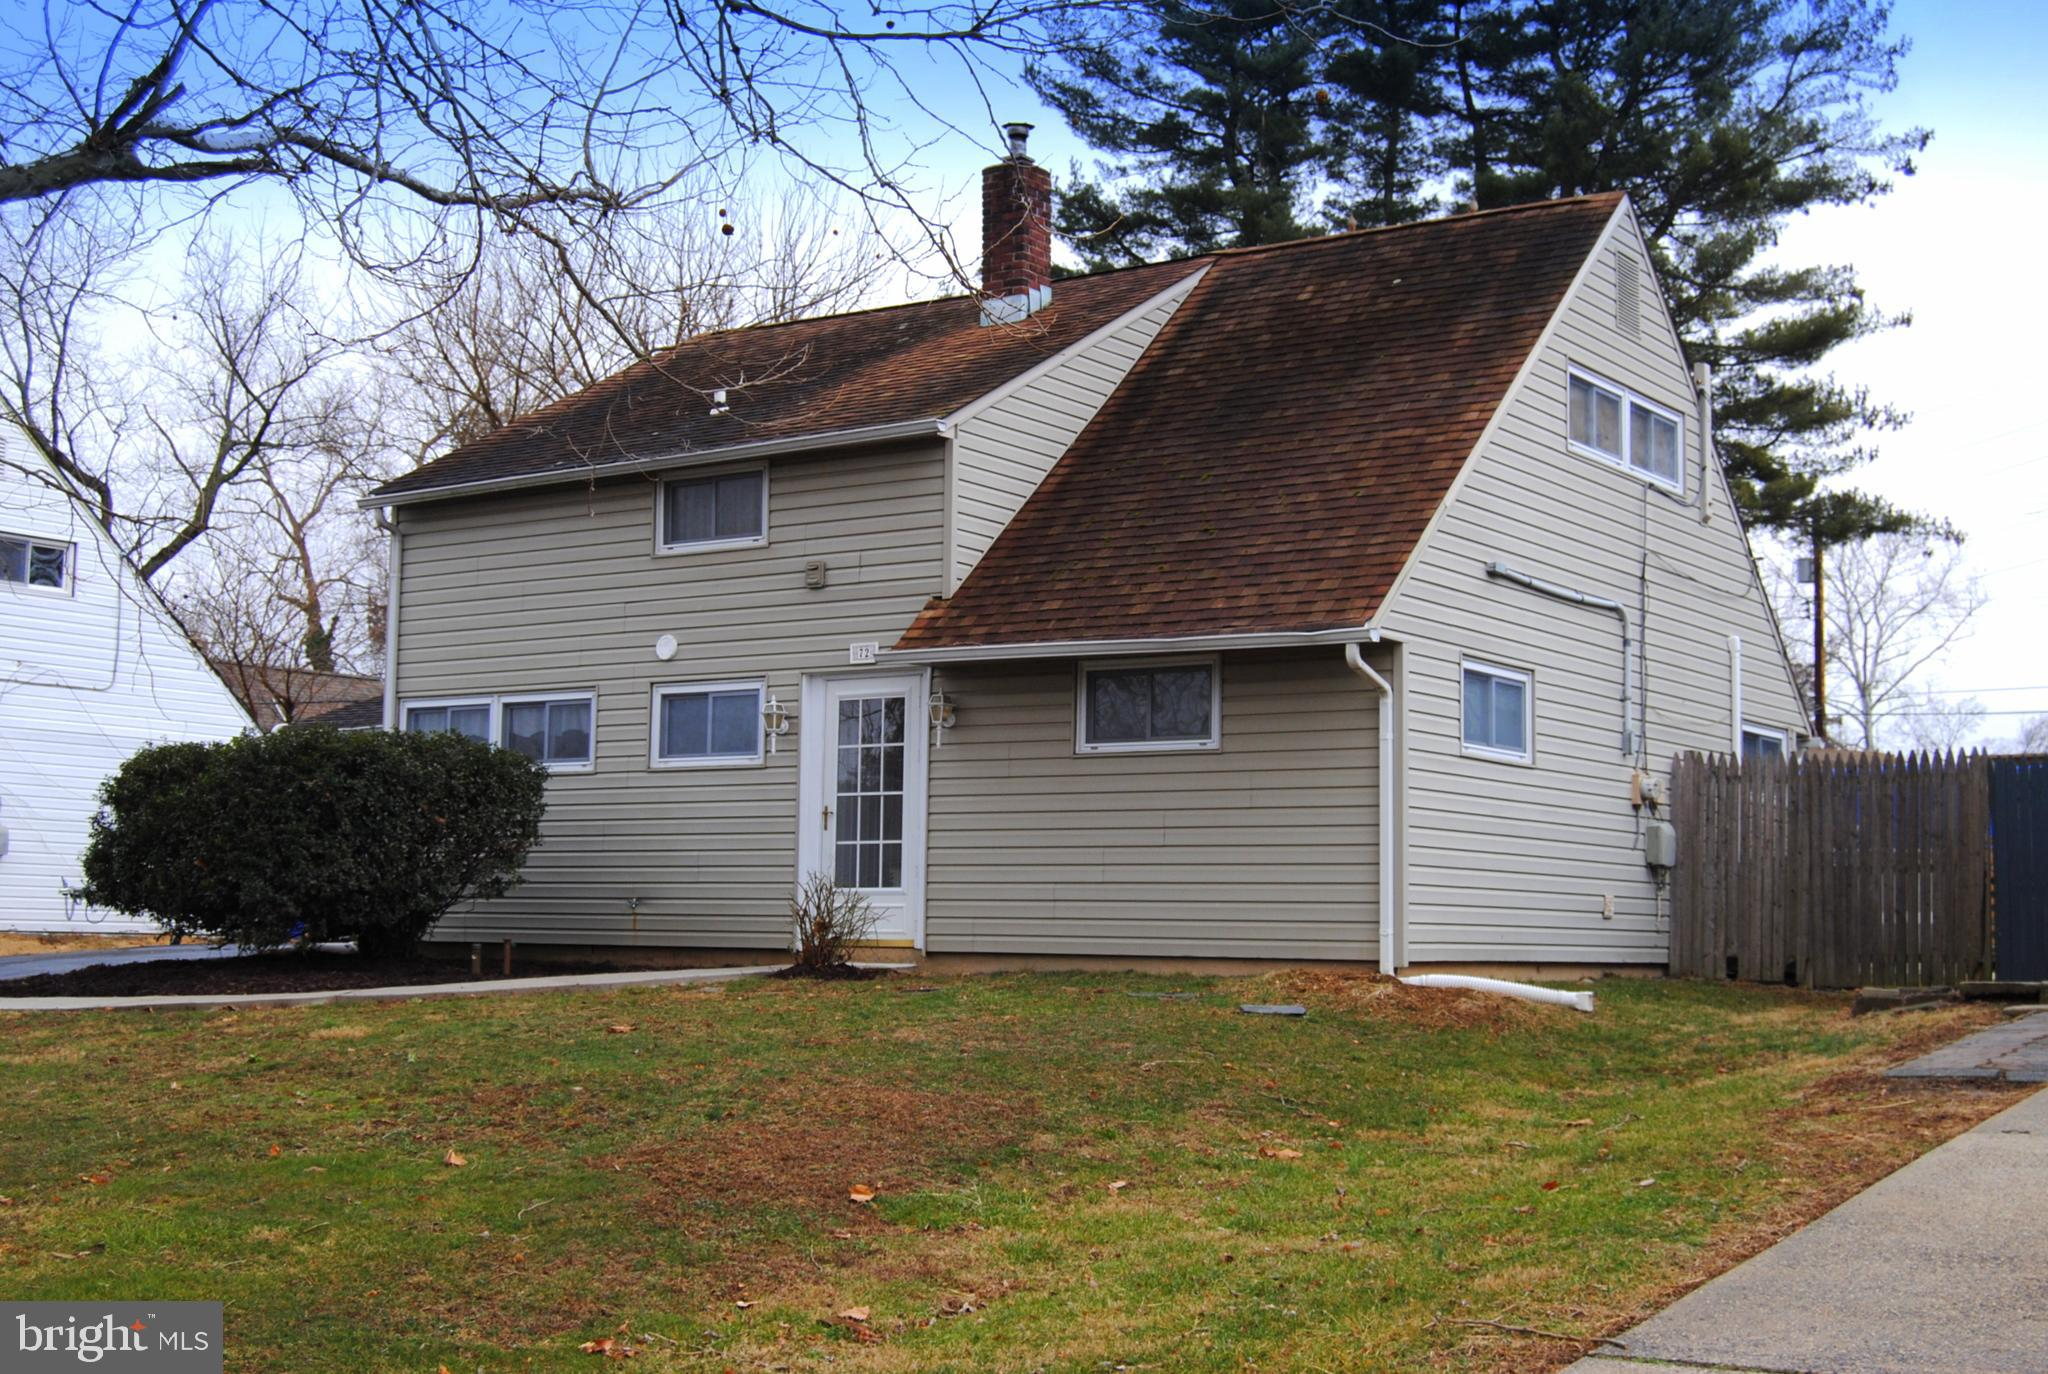 72 IVY HILL ROAD, LEVITTOWN, PA 19057